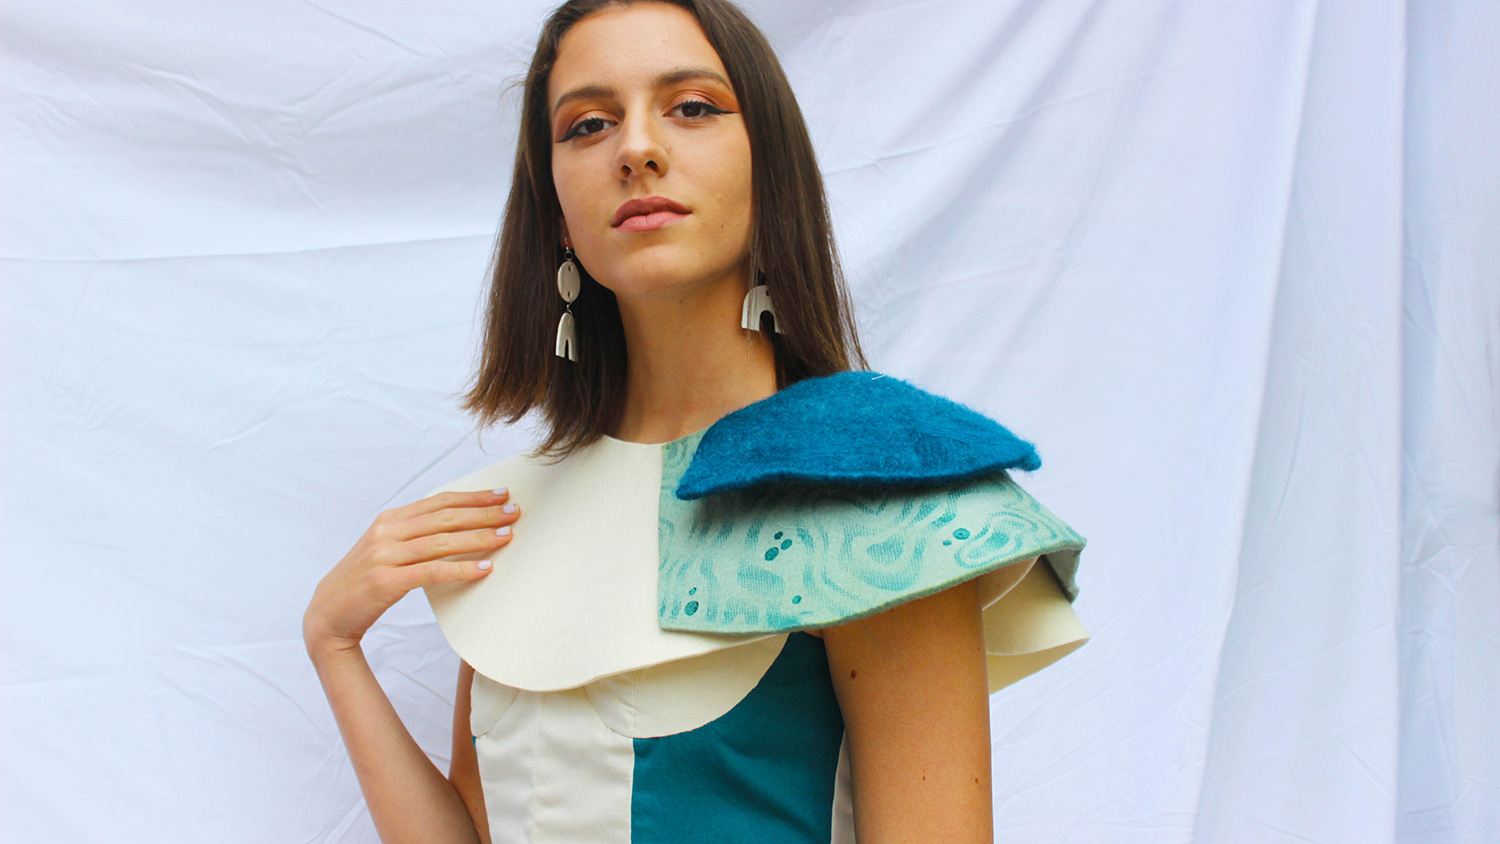 A student models a colorful blue and white garment created for Art2Wear.